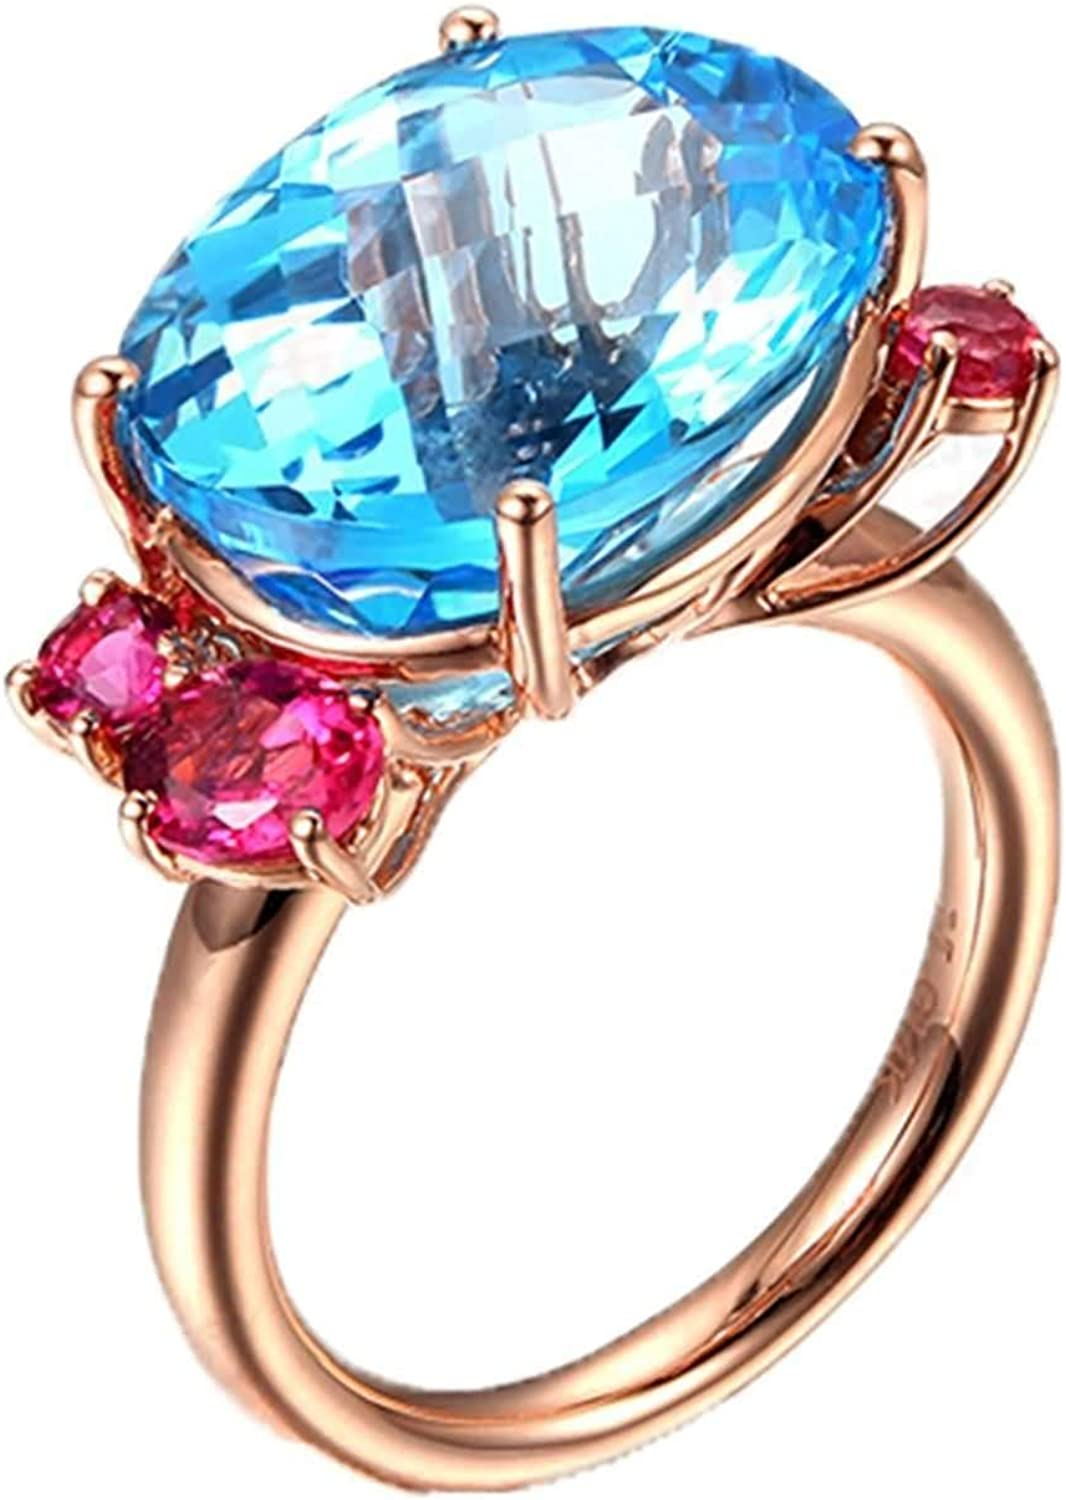 Max 42% OFF Aokarry Promise Rings for Her 18K Lowest price challenge Rose Gold Oval 12.26ct R Topaz